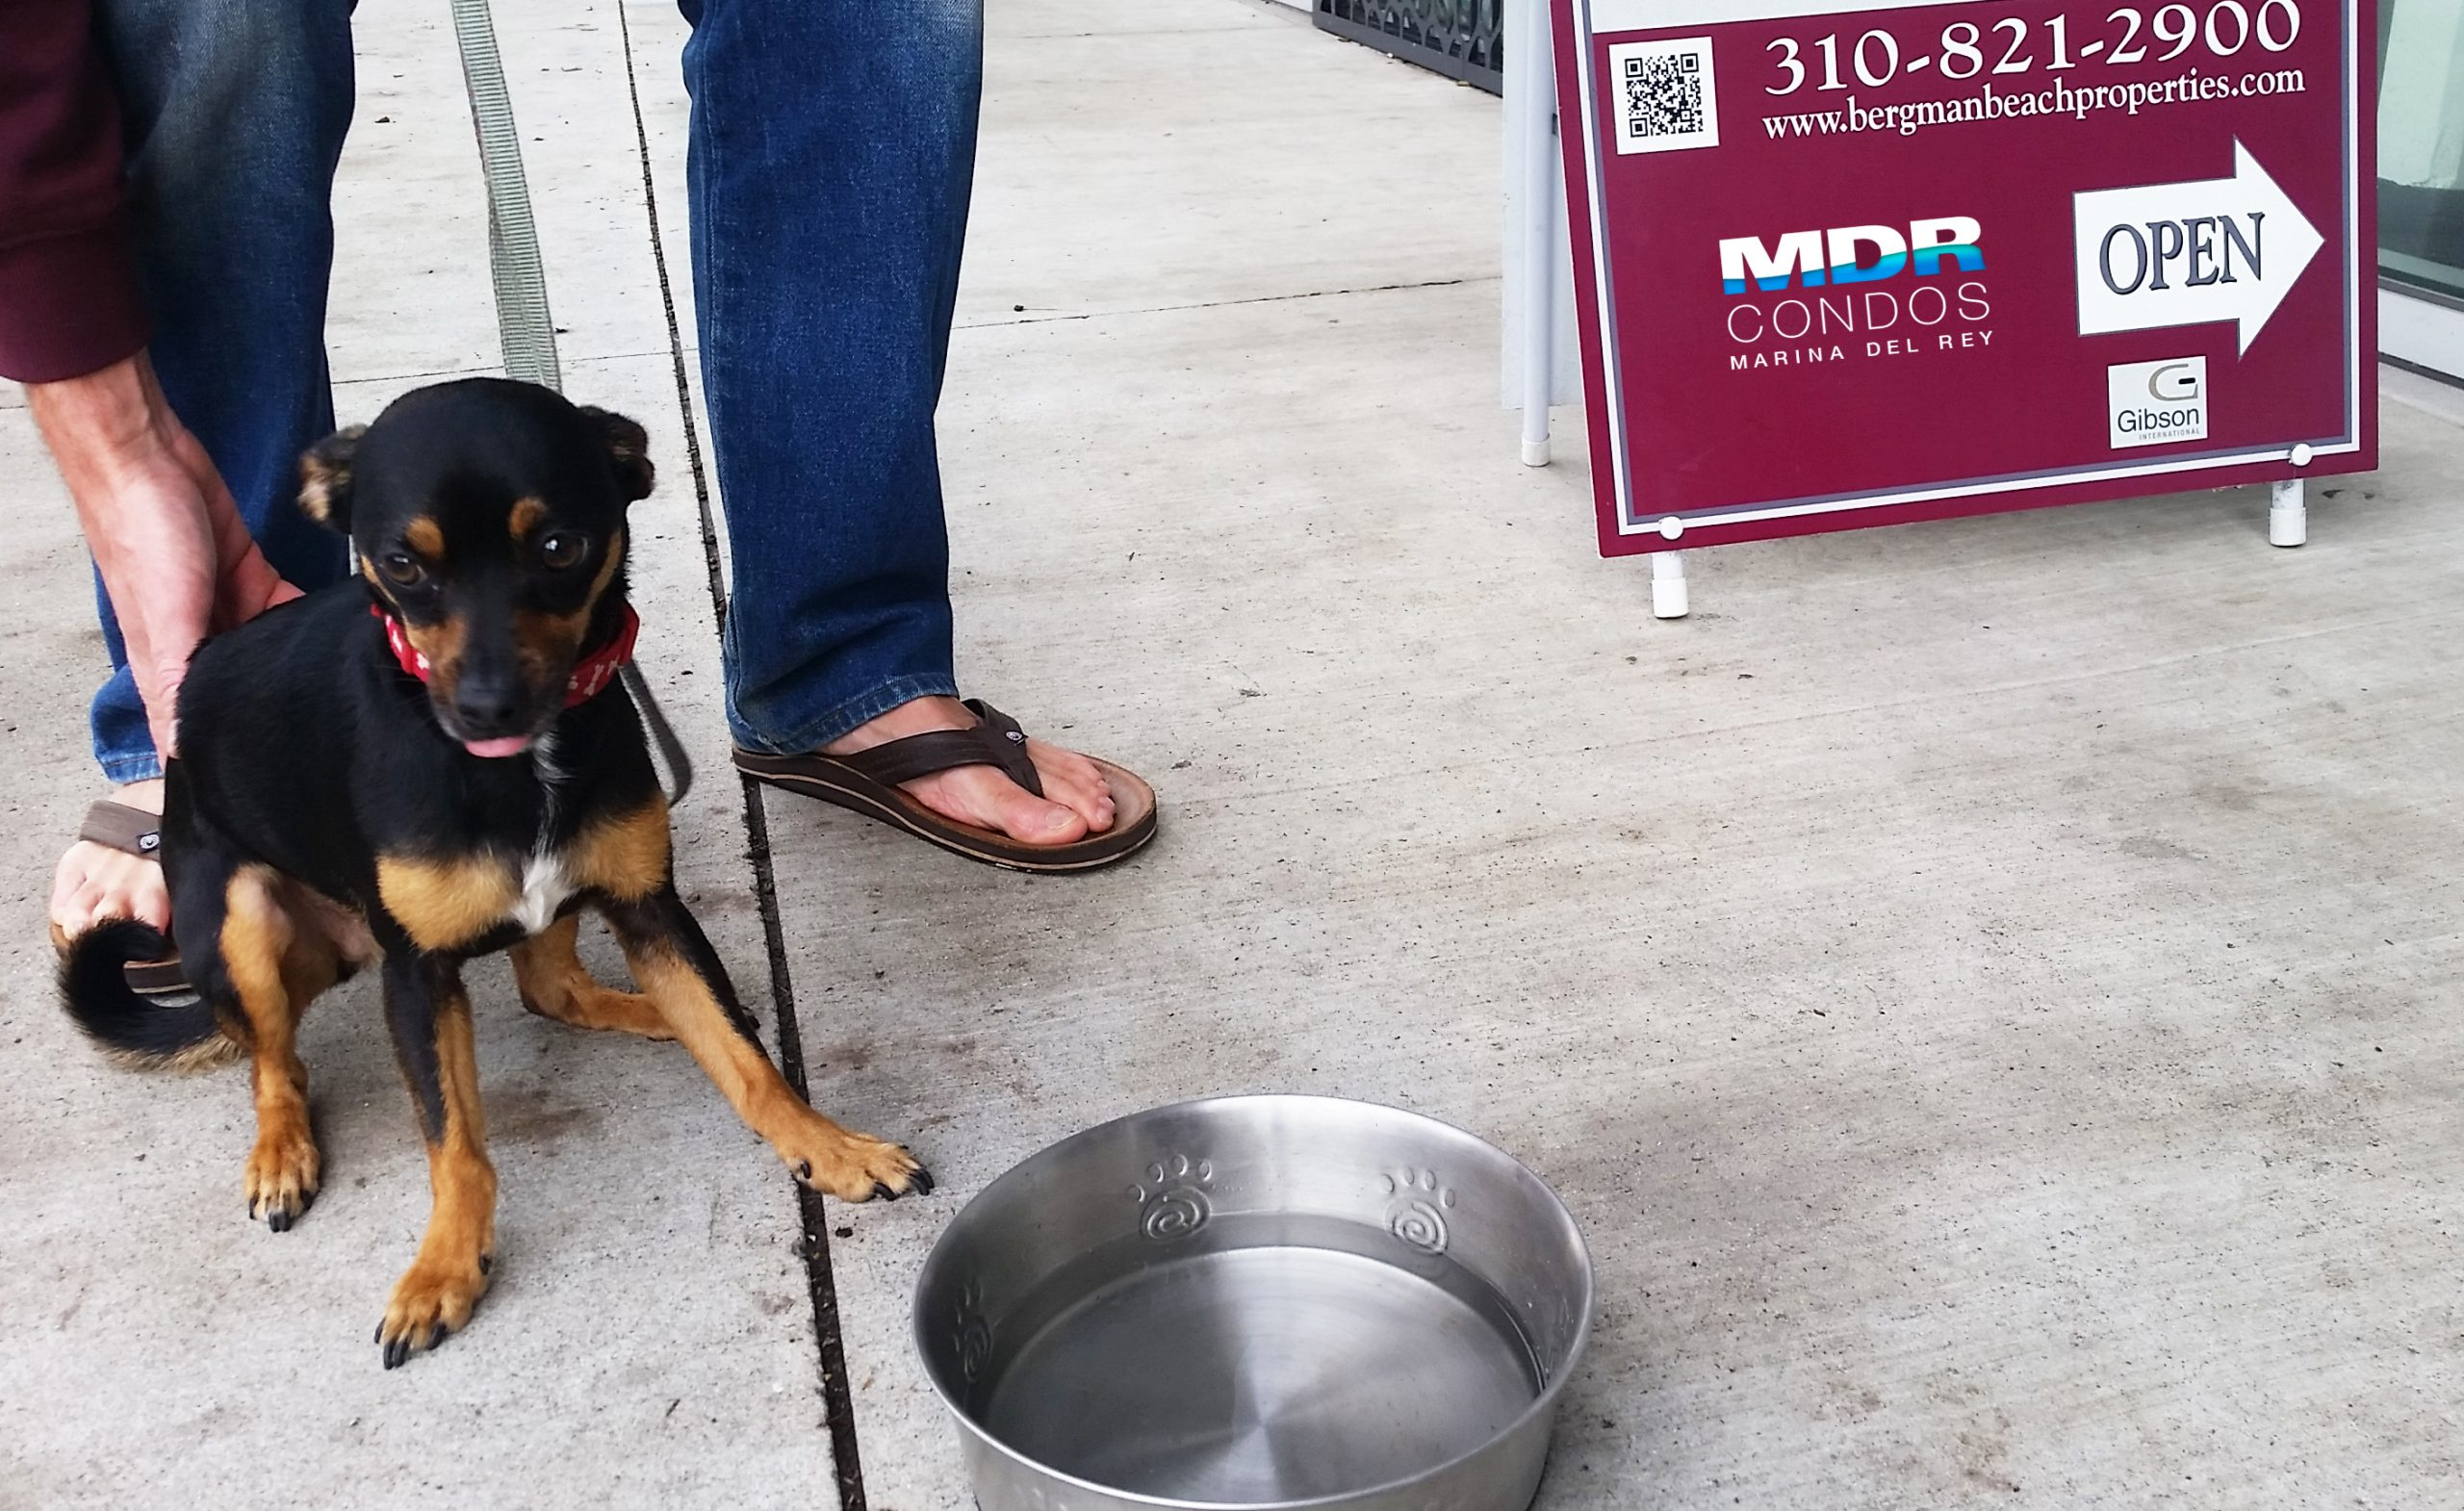 Meet Tom Selleck | Marina del Rey's Water Bowl Dog of the Day